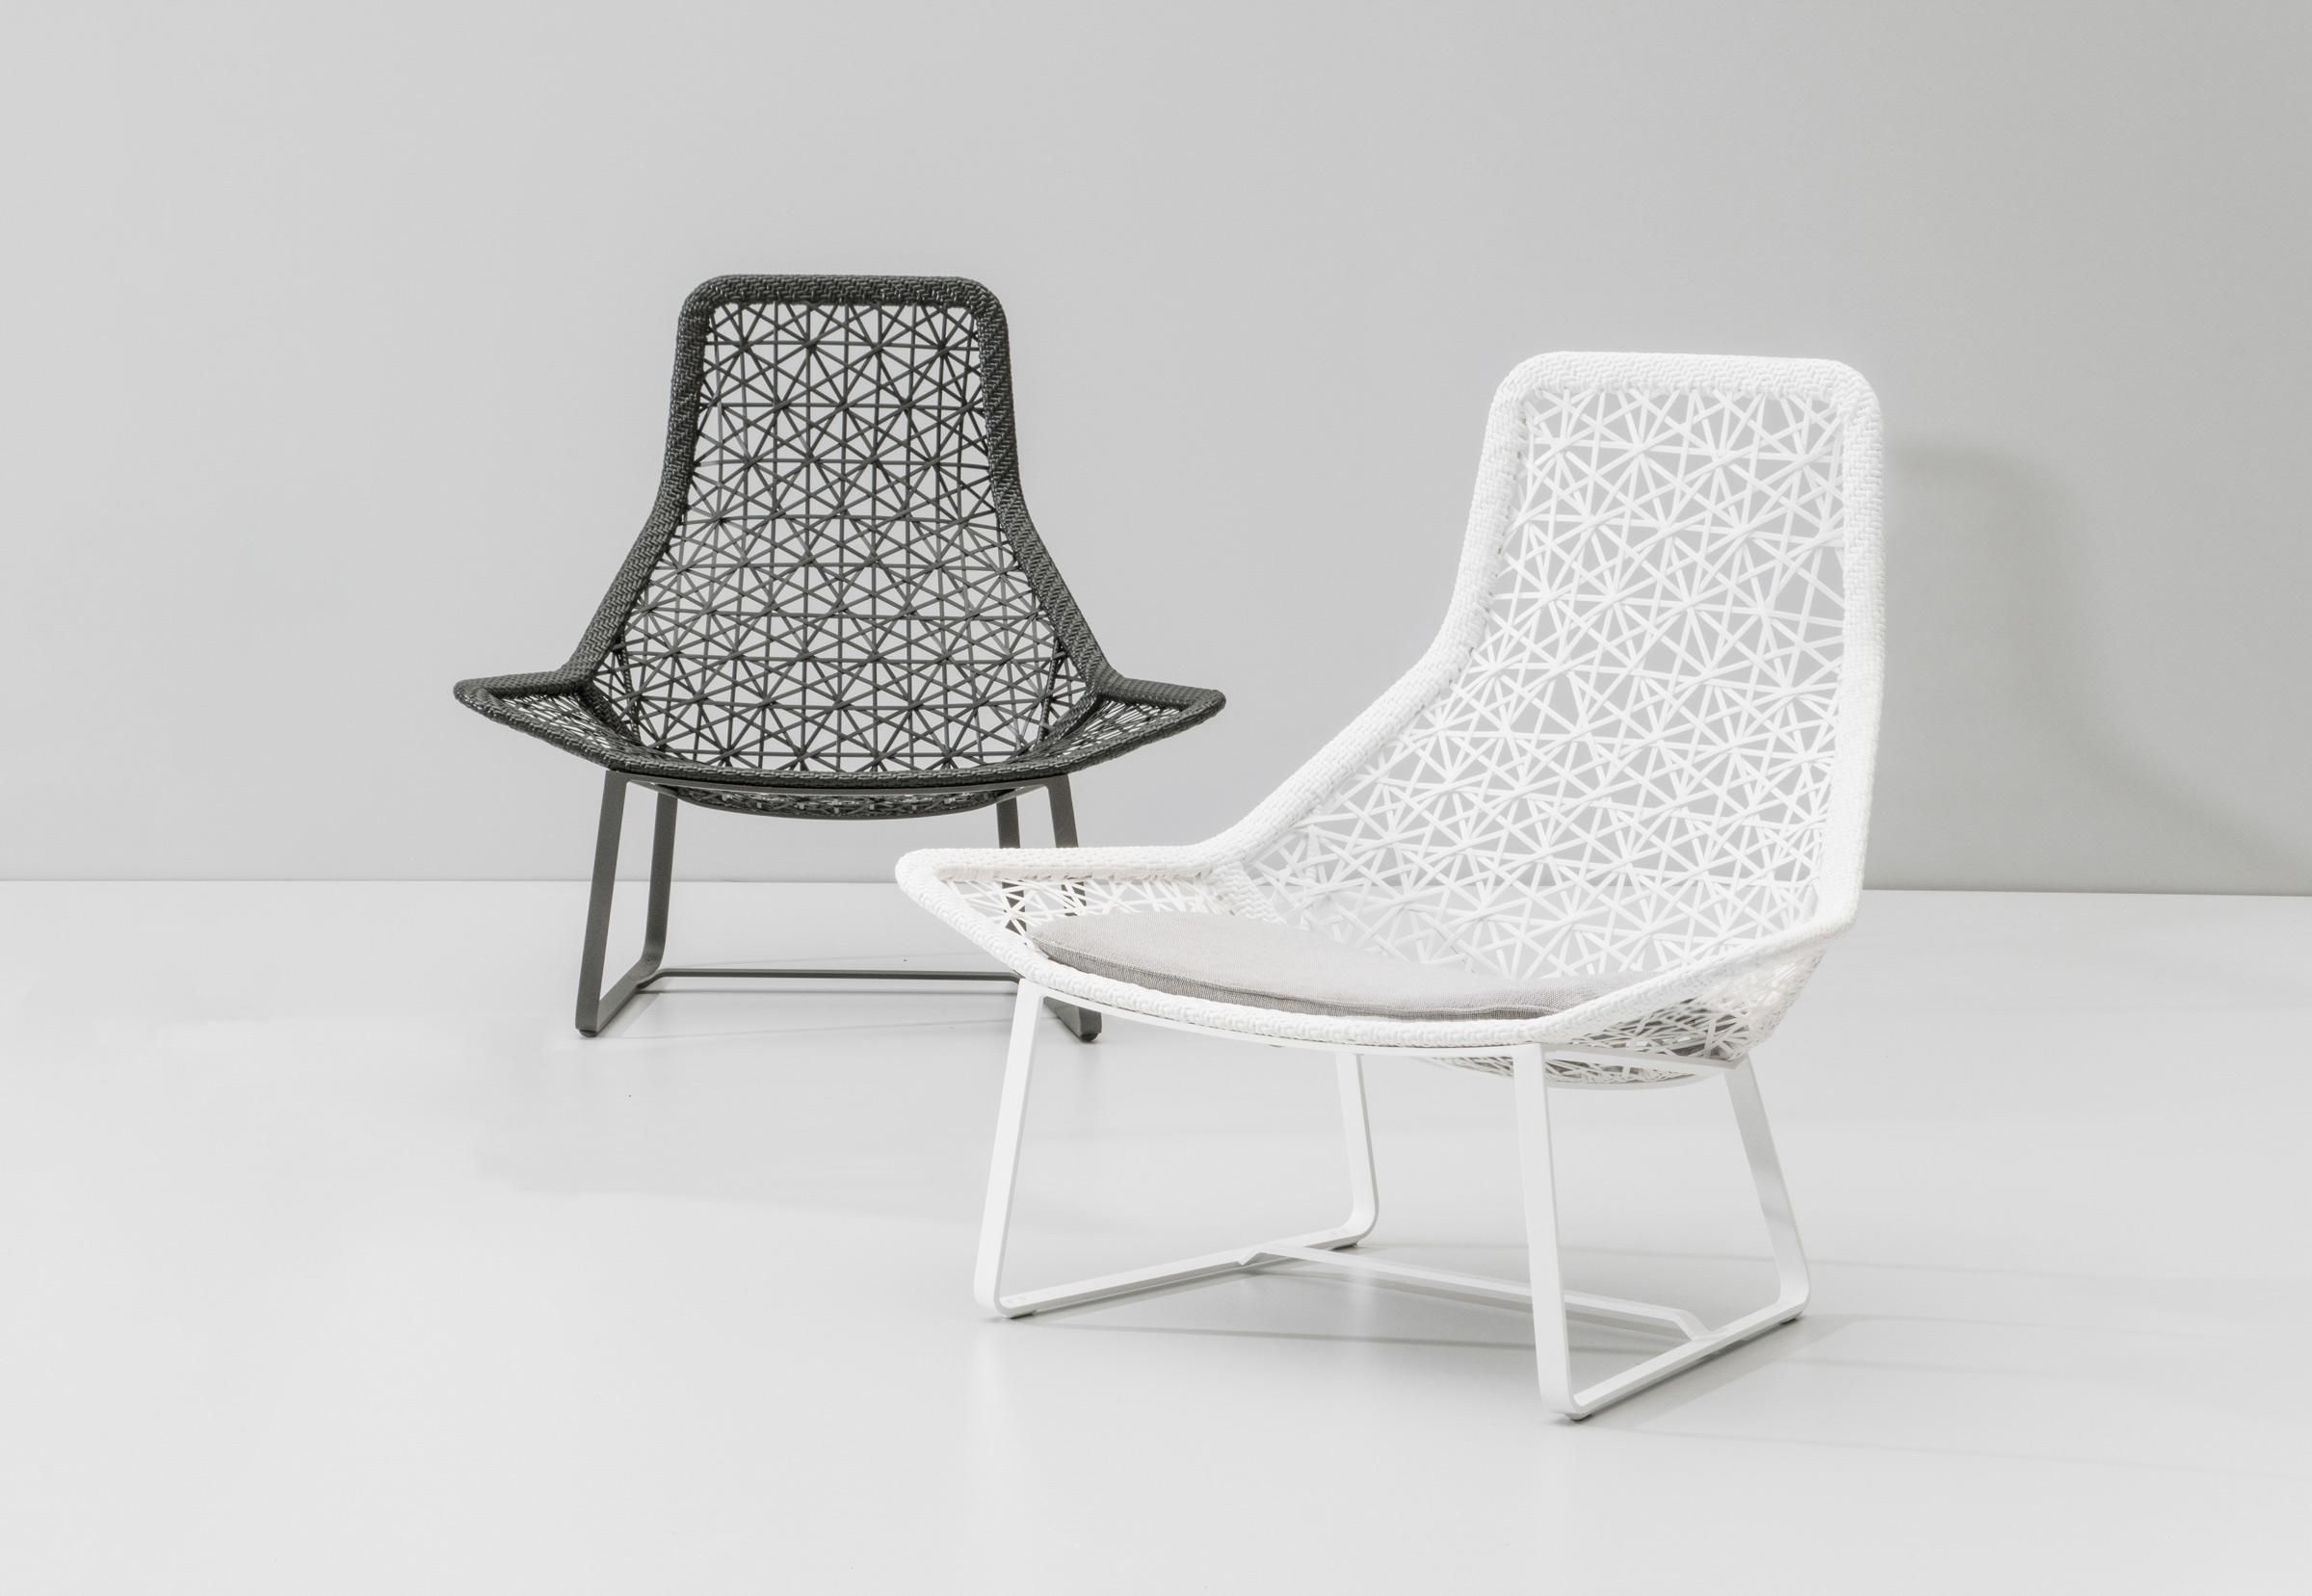 Kettal maia relax armchair terraza muebles for Kettal muebles